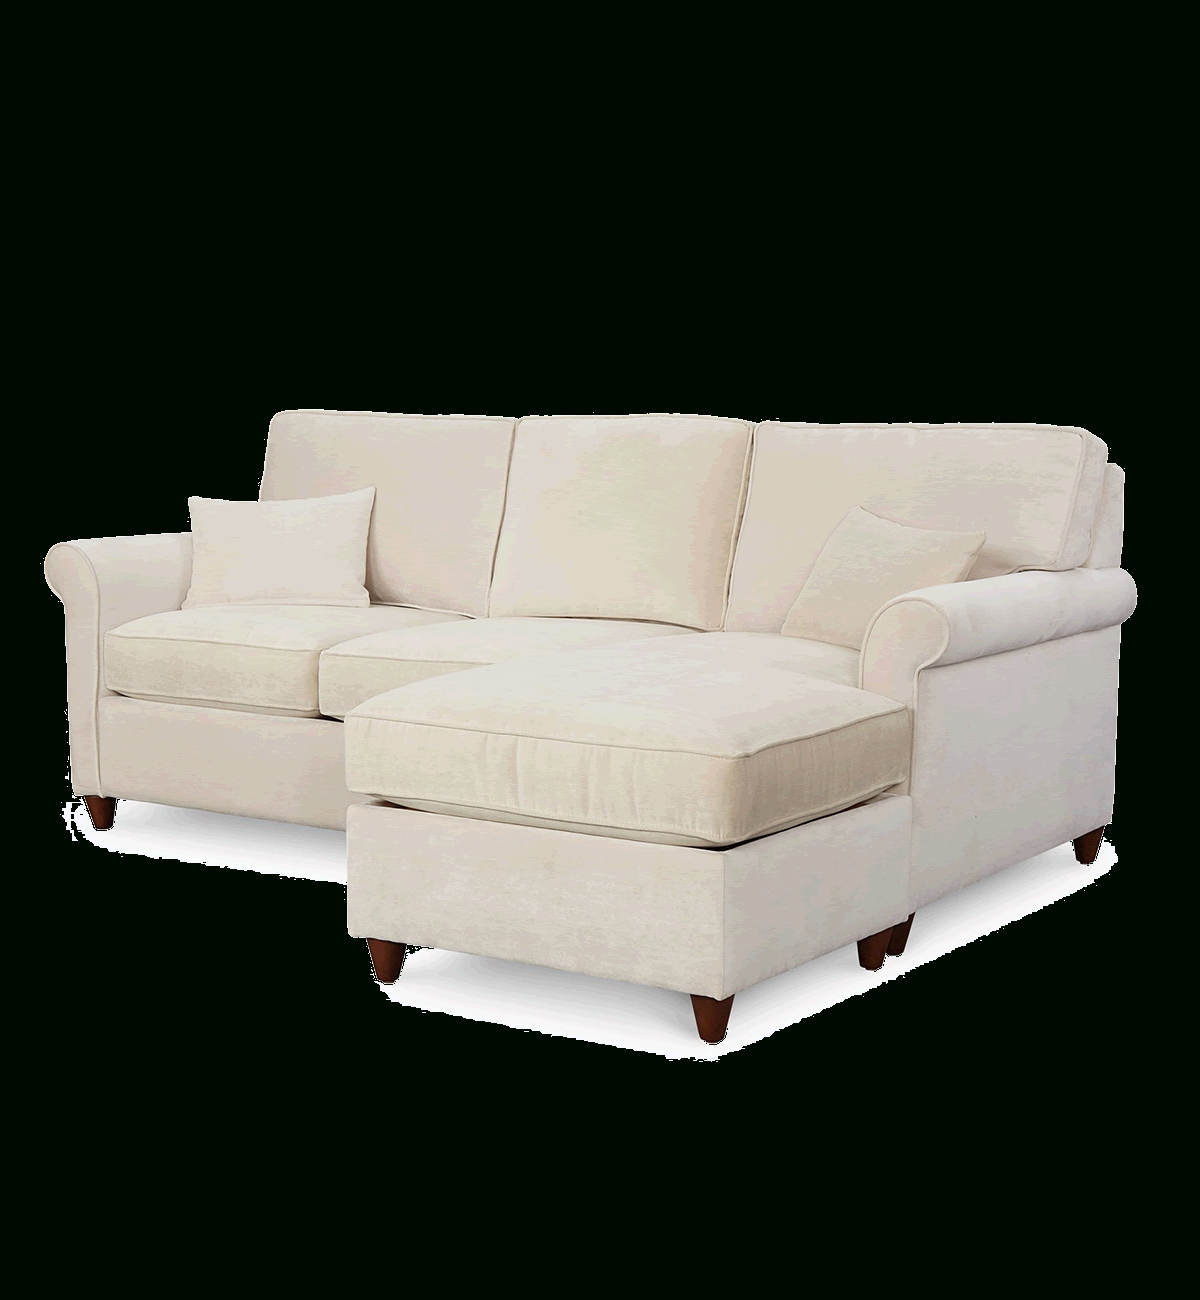 Best And Newest Macys Sectional Sofas Regarding Sectional Sofas Couches And Sofas – Macy's (View 12 of 20)